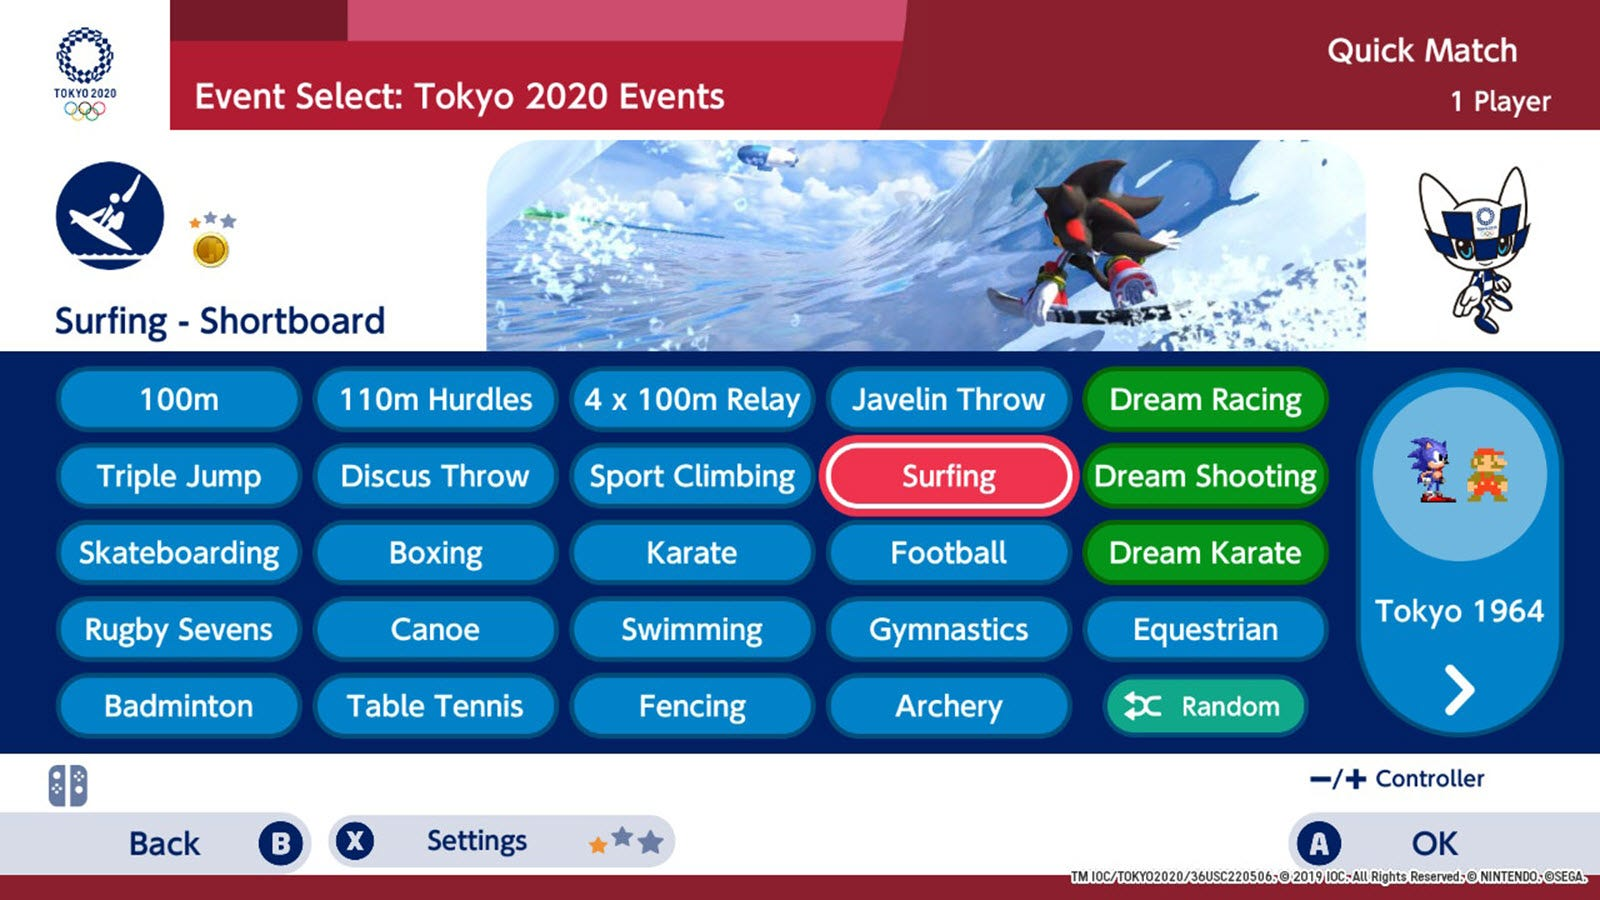 The event selection menu screen, listing everything from boxing to archery.